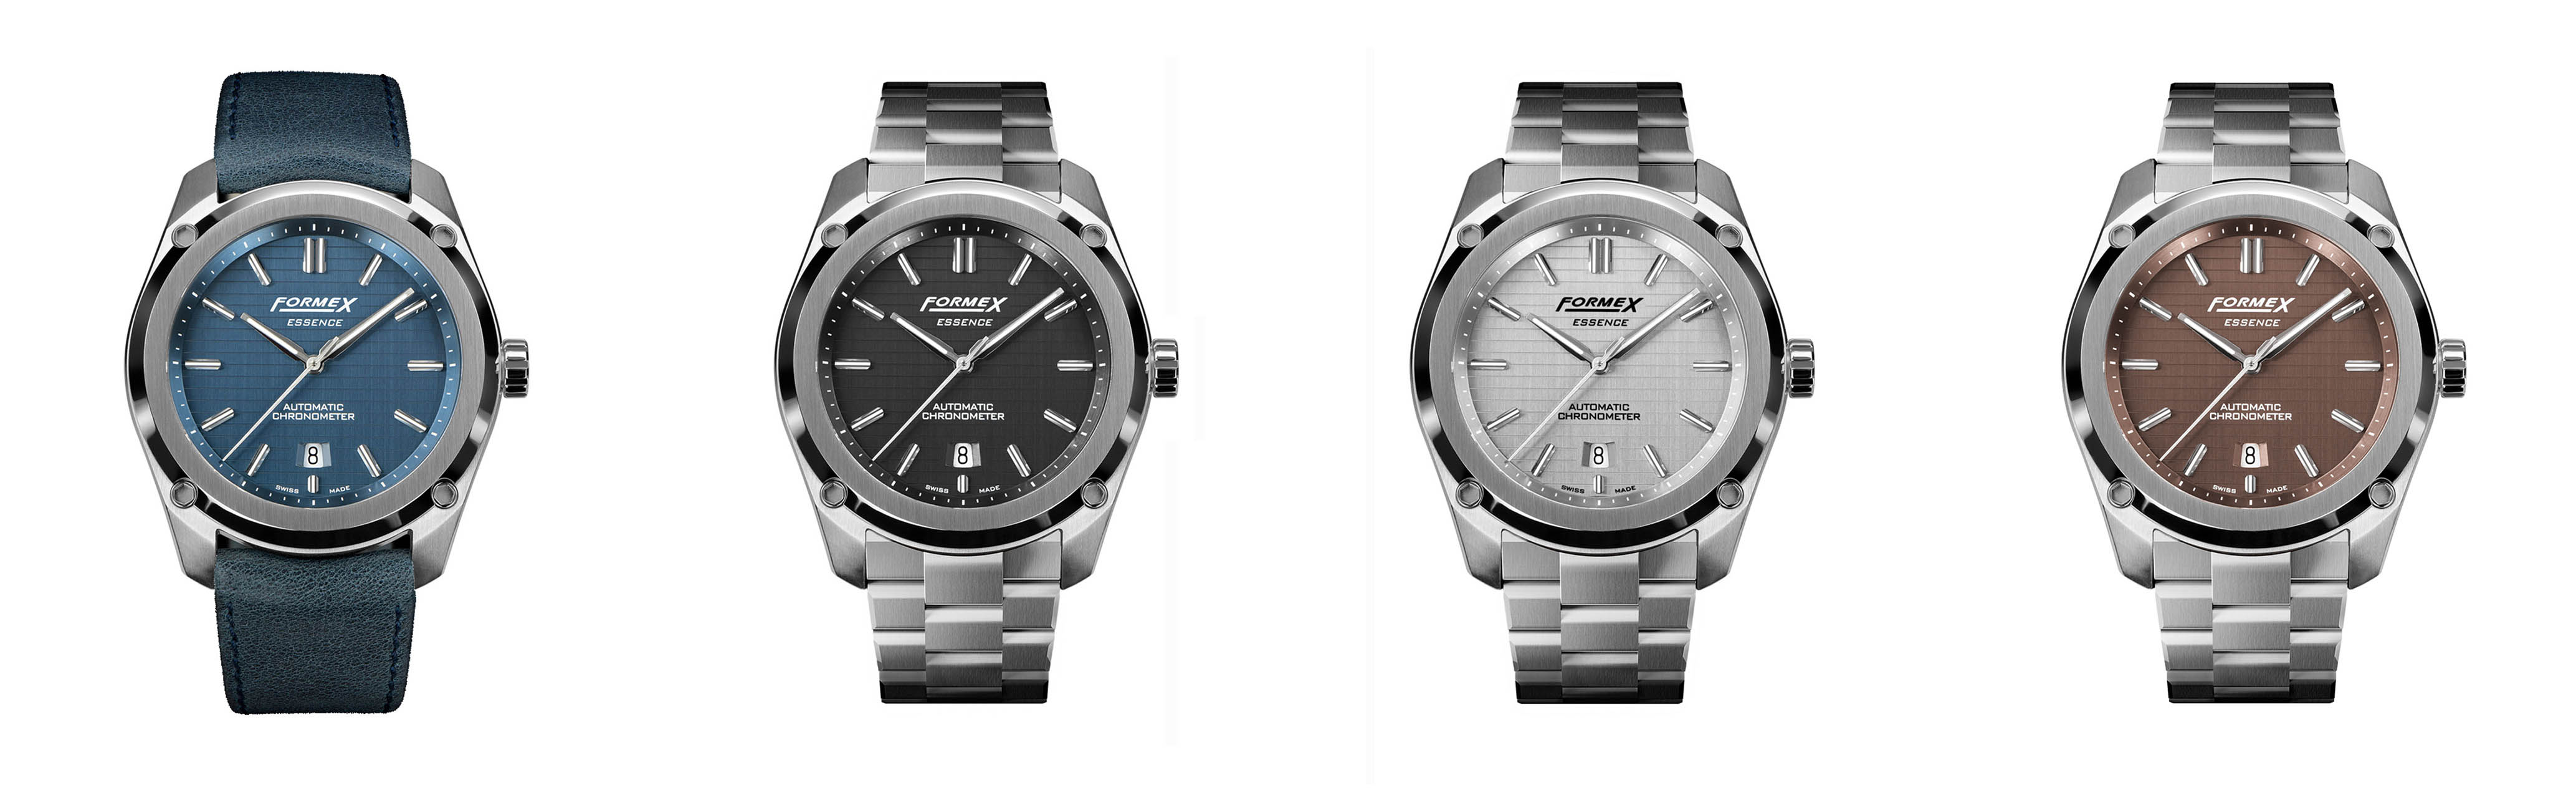 WB_Formex-Essence-Automatic-Chronometer-collection